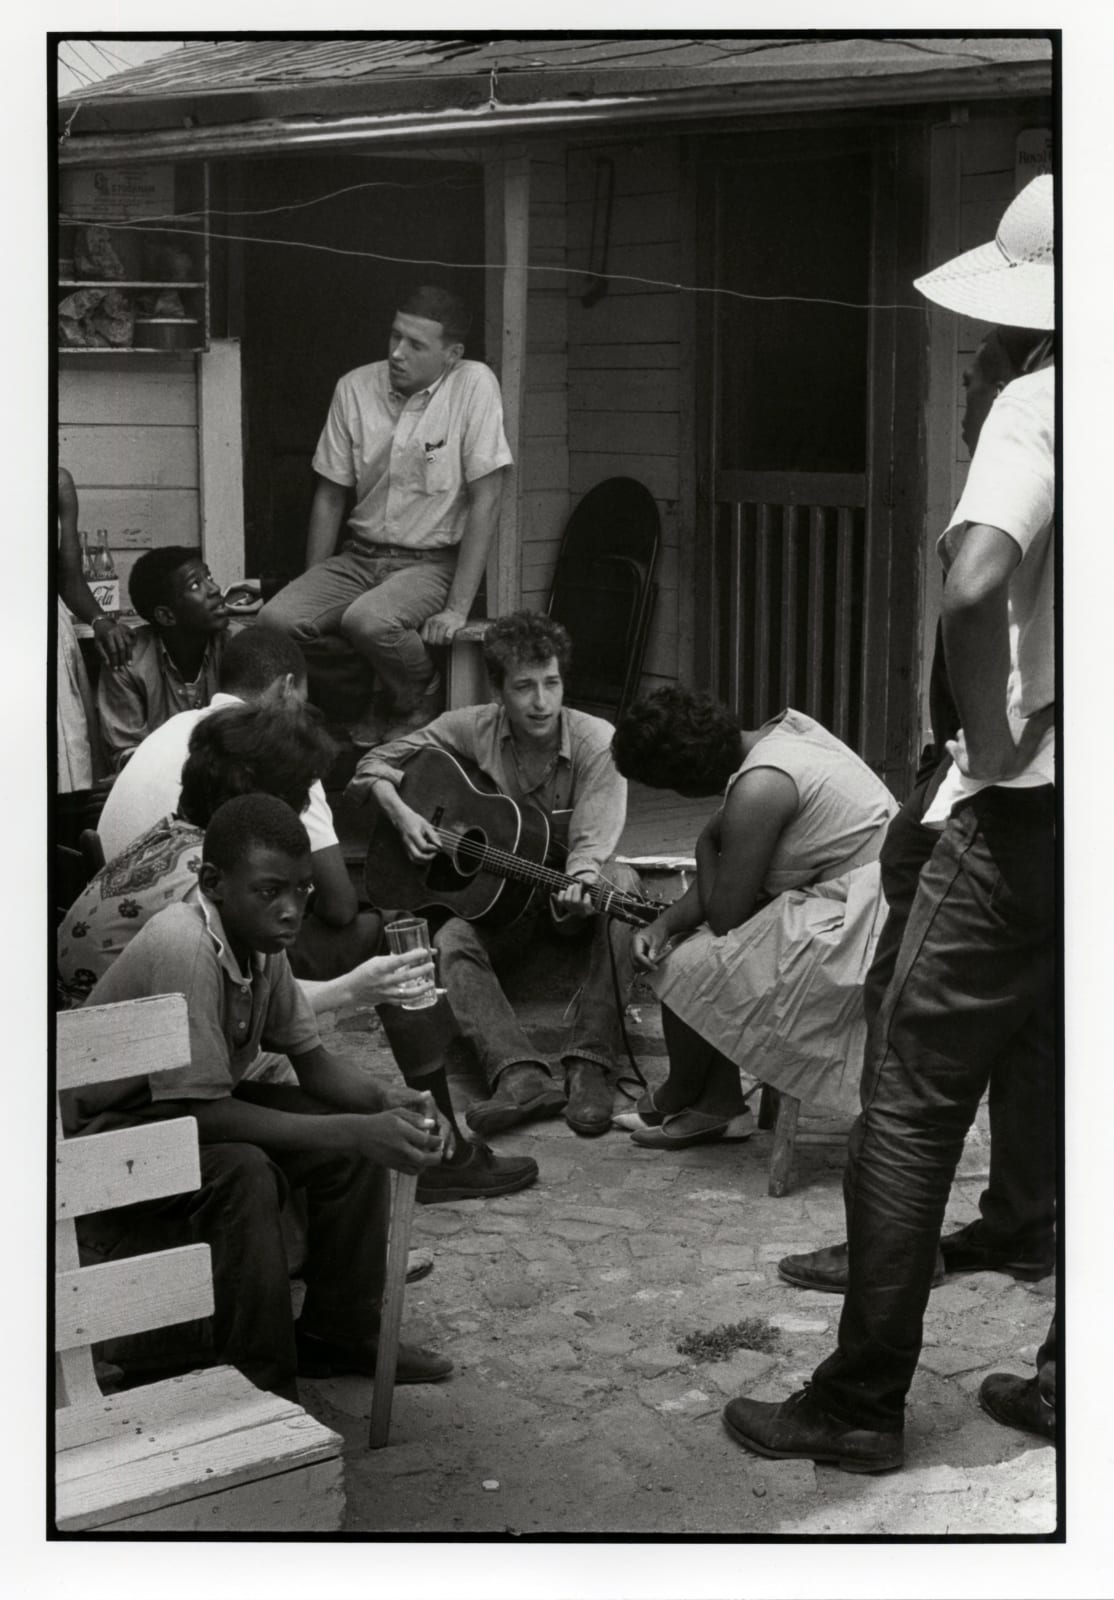 Danny Lyon - Bob Dylan Behind The SNCC Office, Greenwood, Mississippi, 1963